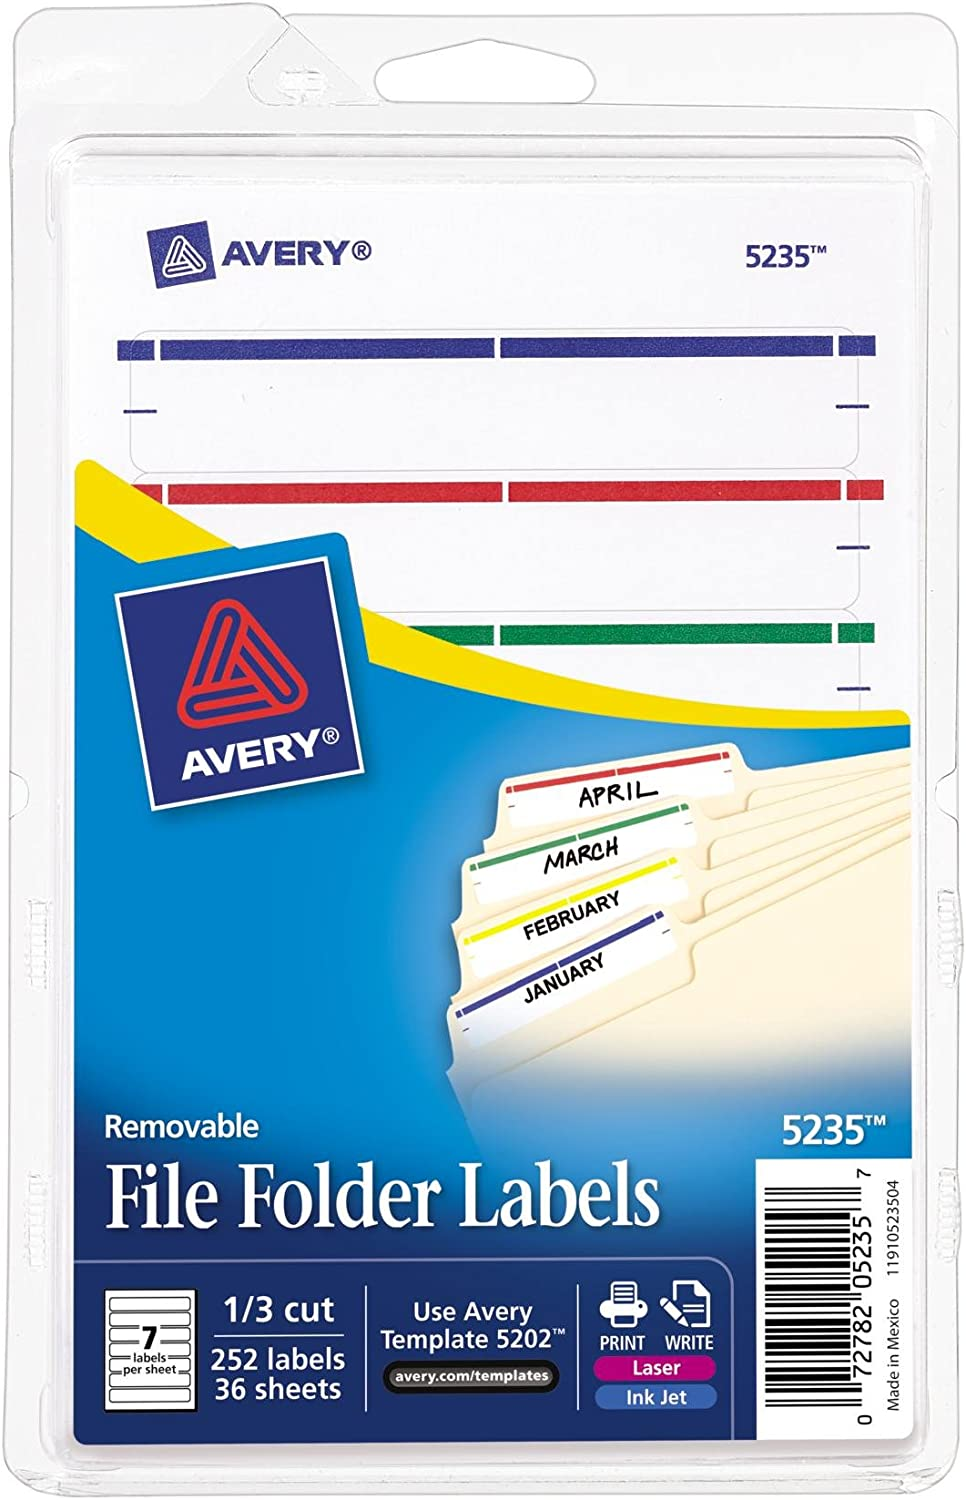 Avery Removable File Folder Labels, Assorted, 1/3 Cut, Pack of 252 (5235) : Colored File Folders : Office Products